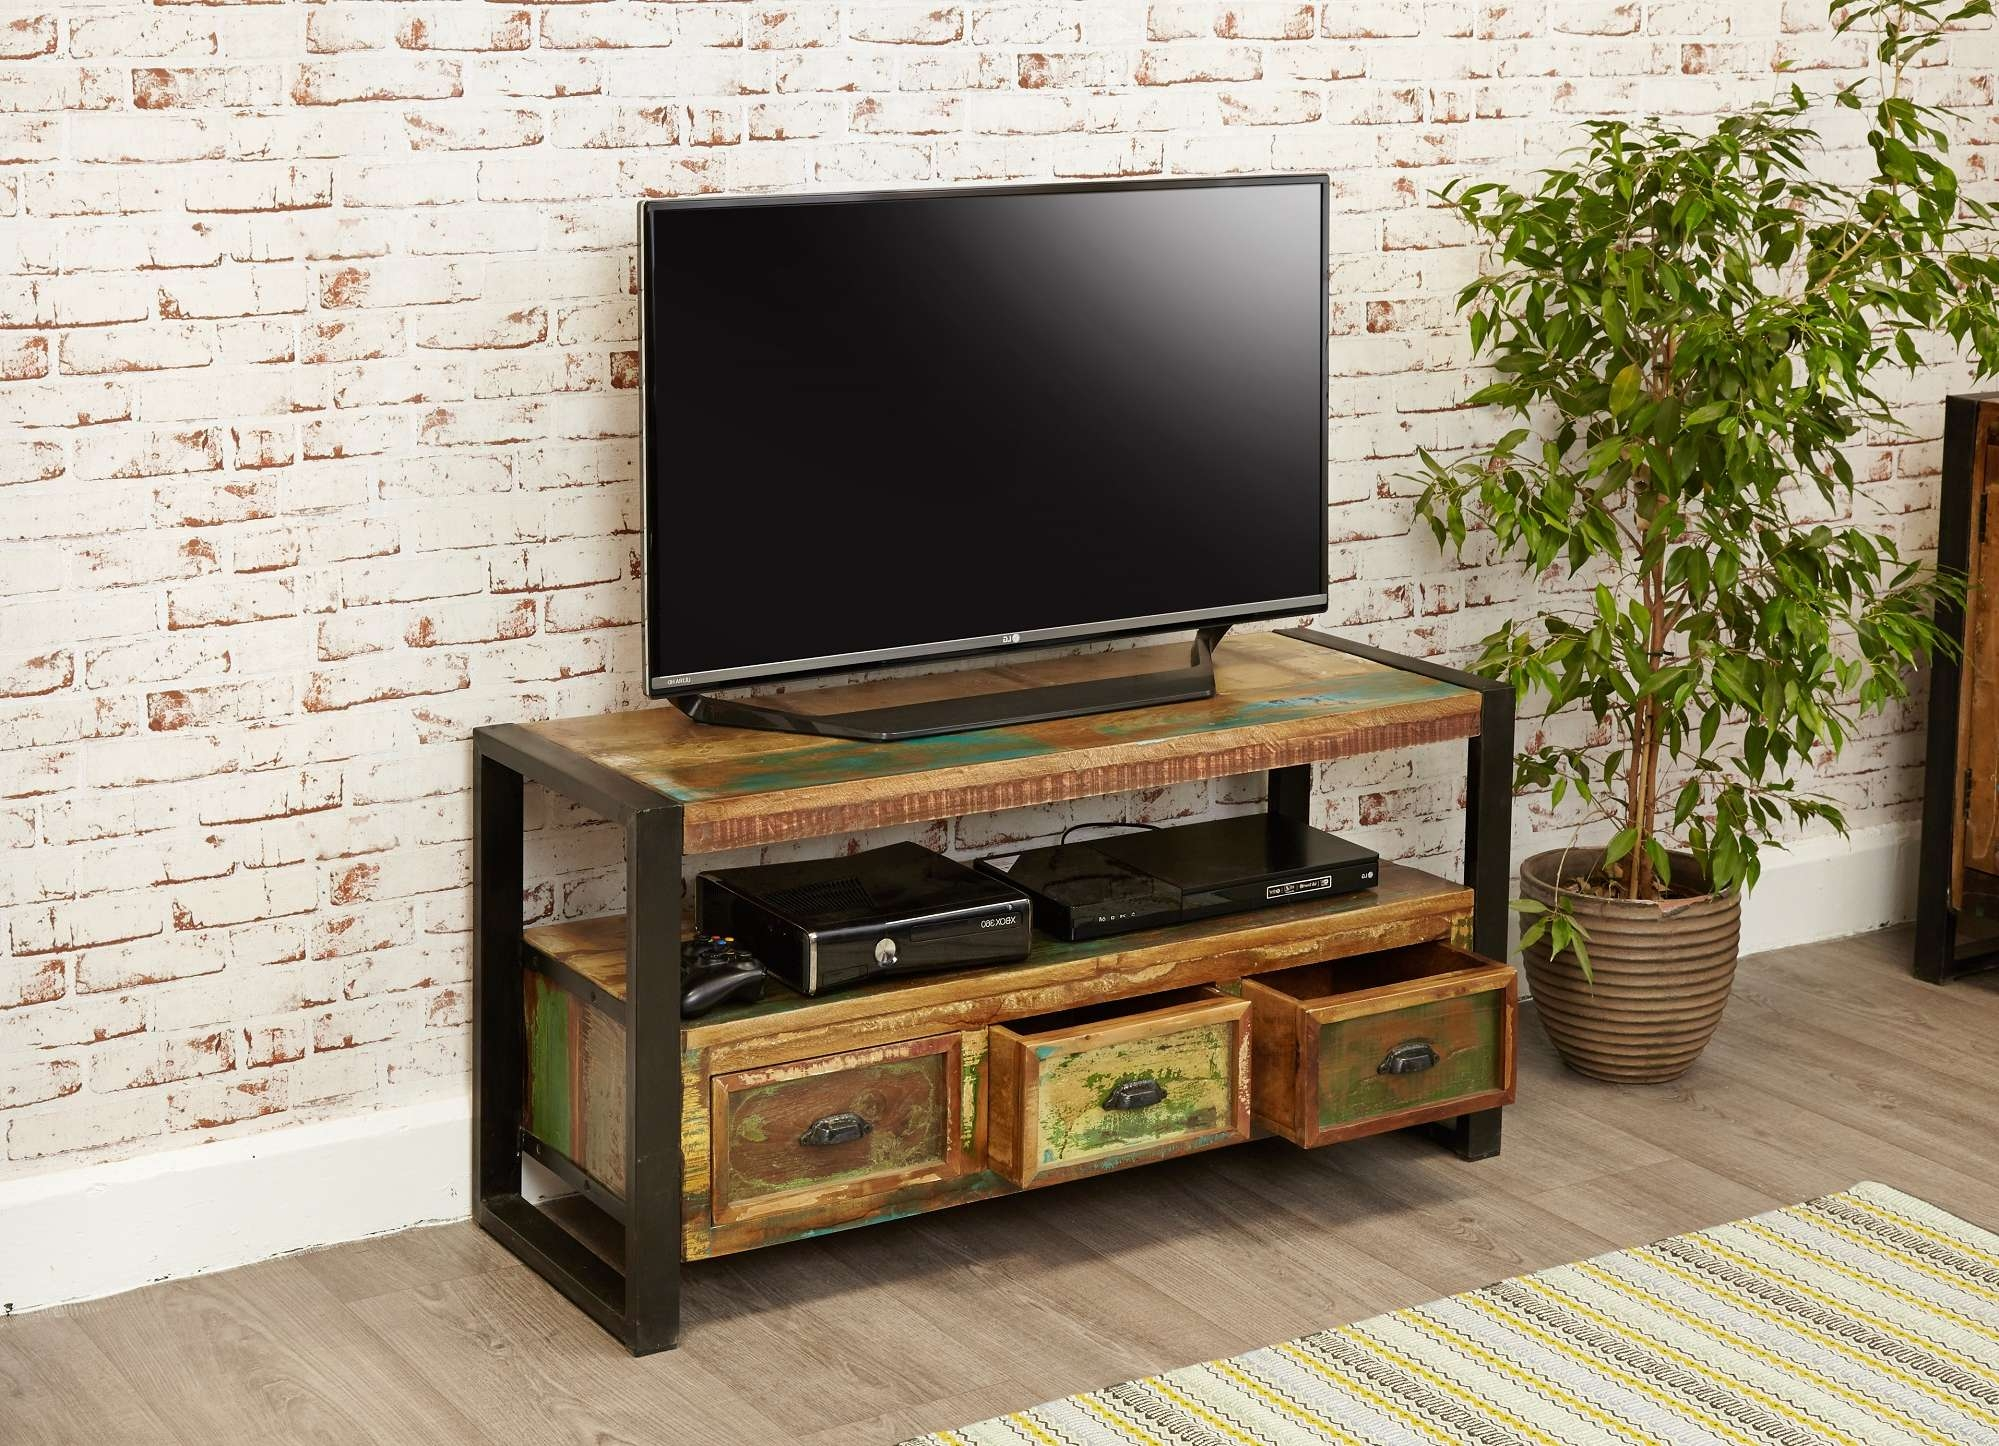 Industrial Chic Widescreen Television Cabinet | Hampshire Furniture For Widescreen Tv Cabinets (View 10 of 20)